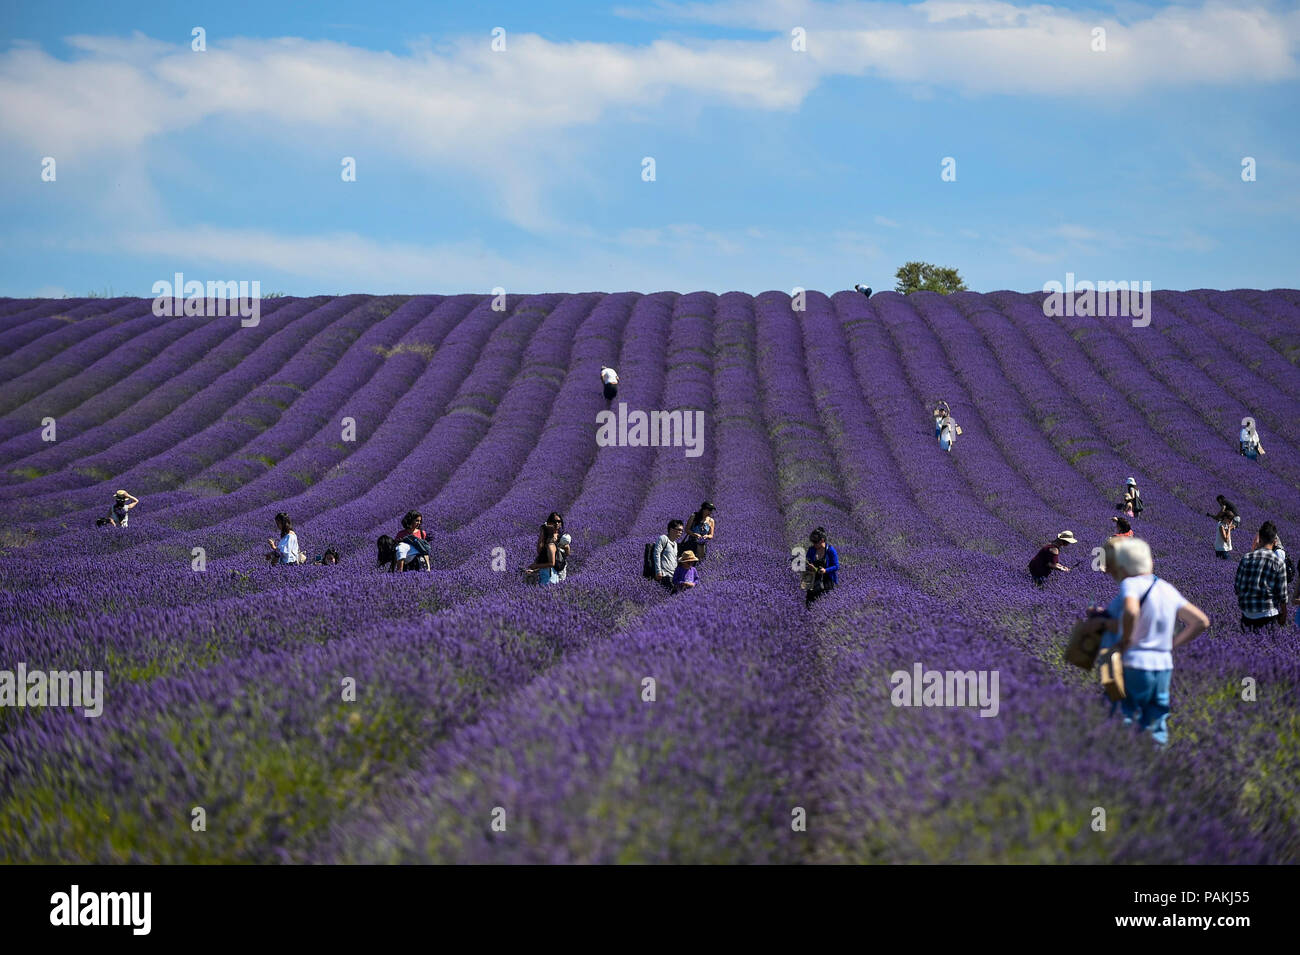 Lavendel Ziehen Ickleford Uk 24 Juli 2018 Besucher In Hitchin Lavender Farm